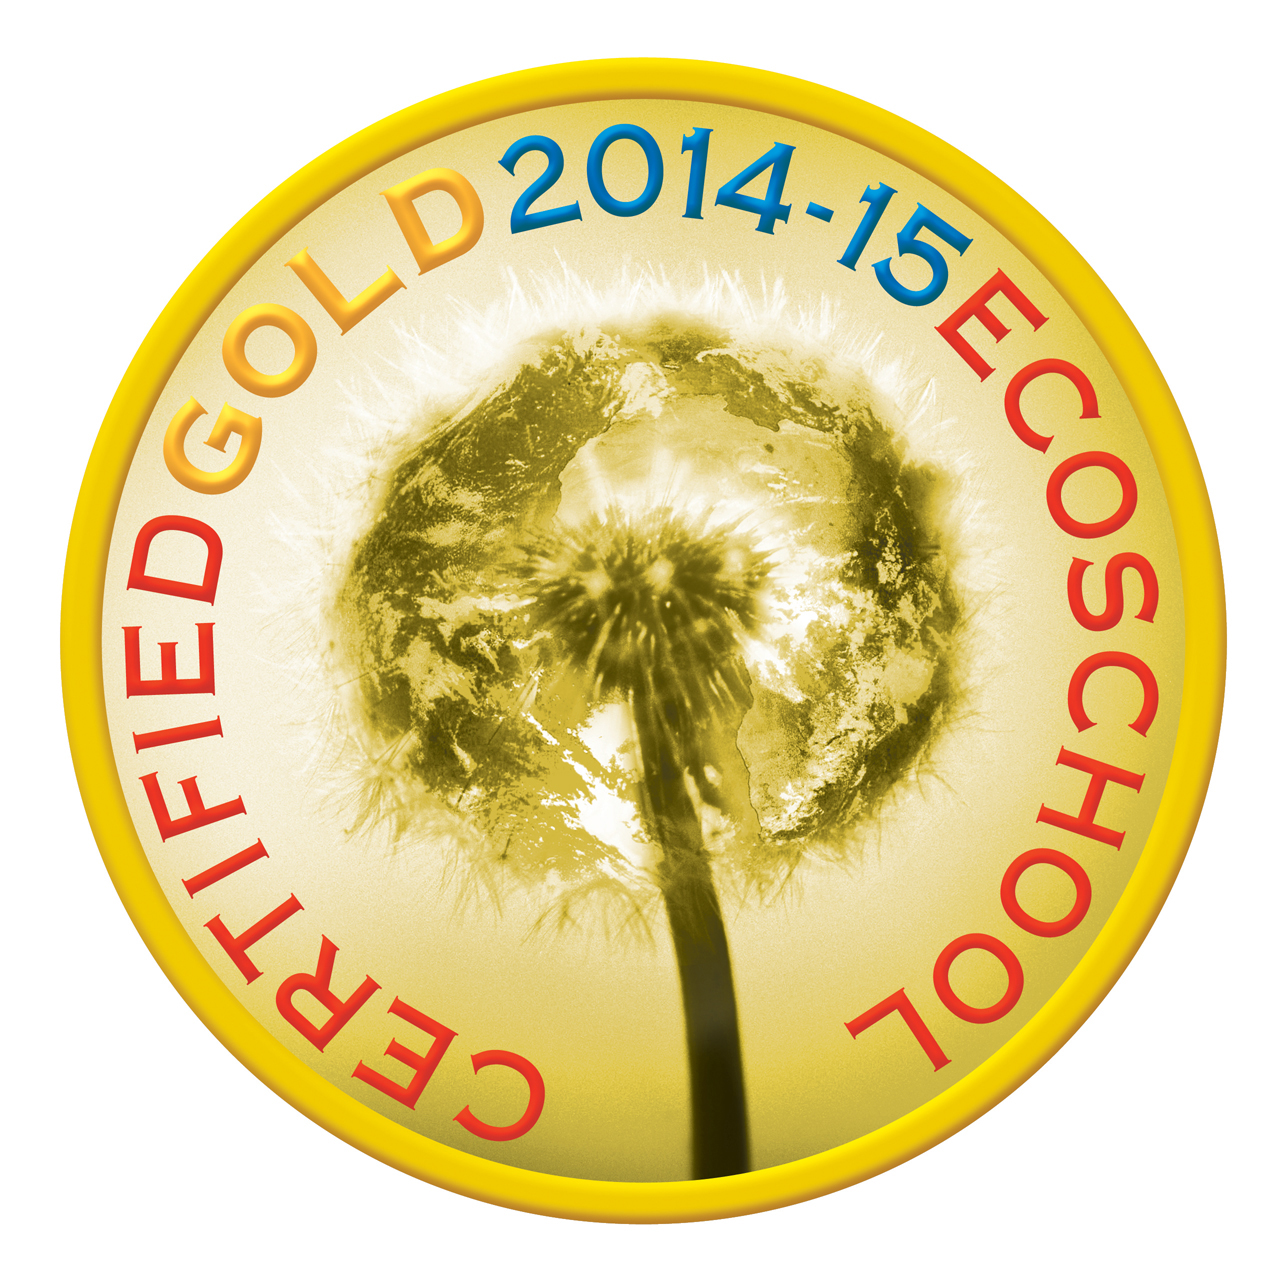 Gold Eco School